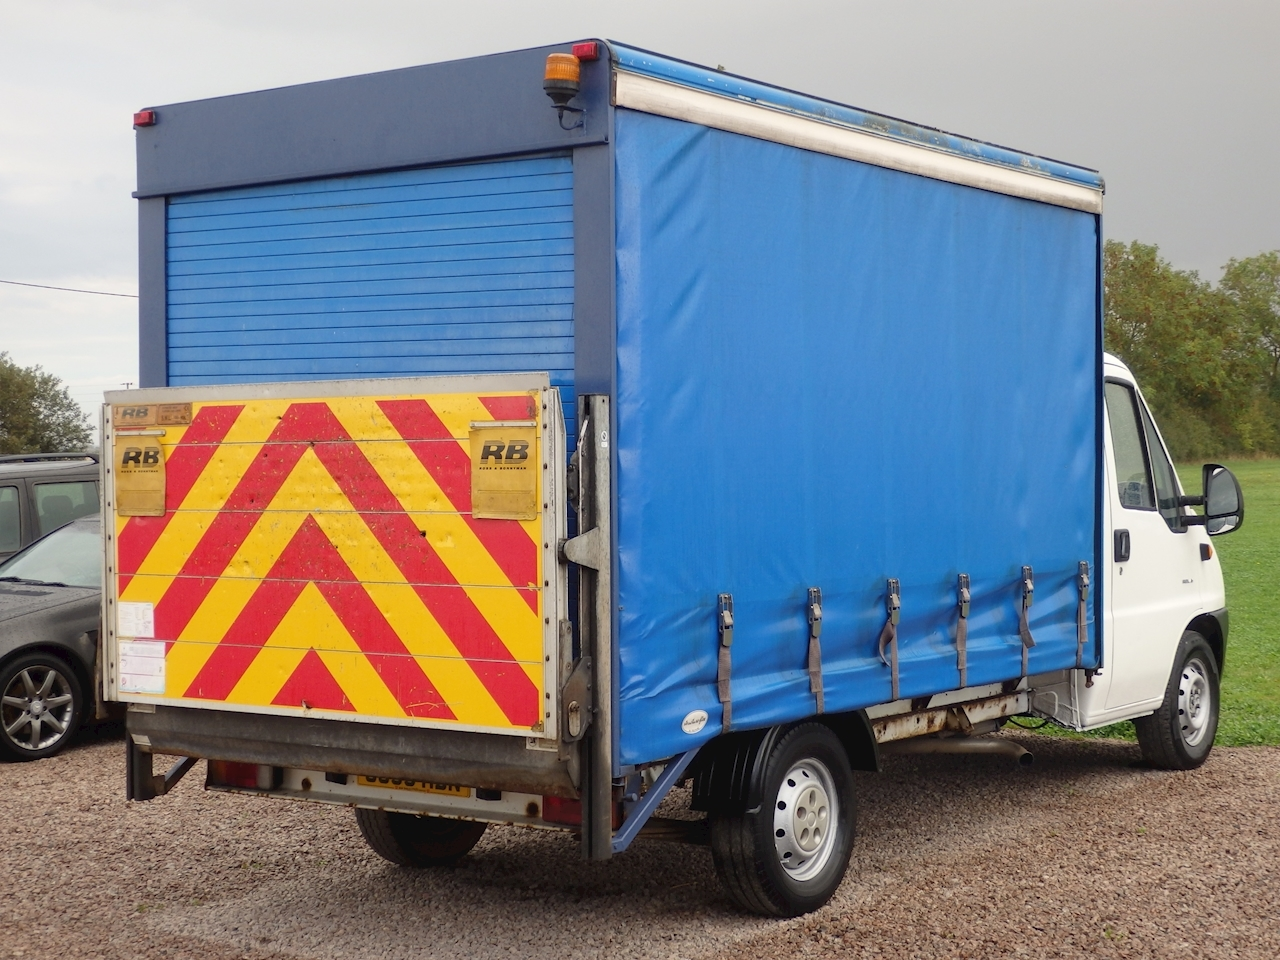 Citroen Relay Luton Curtainsider + Tailift 2.8 2dr Chassis Cab Manual Diesel